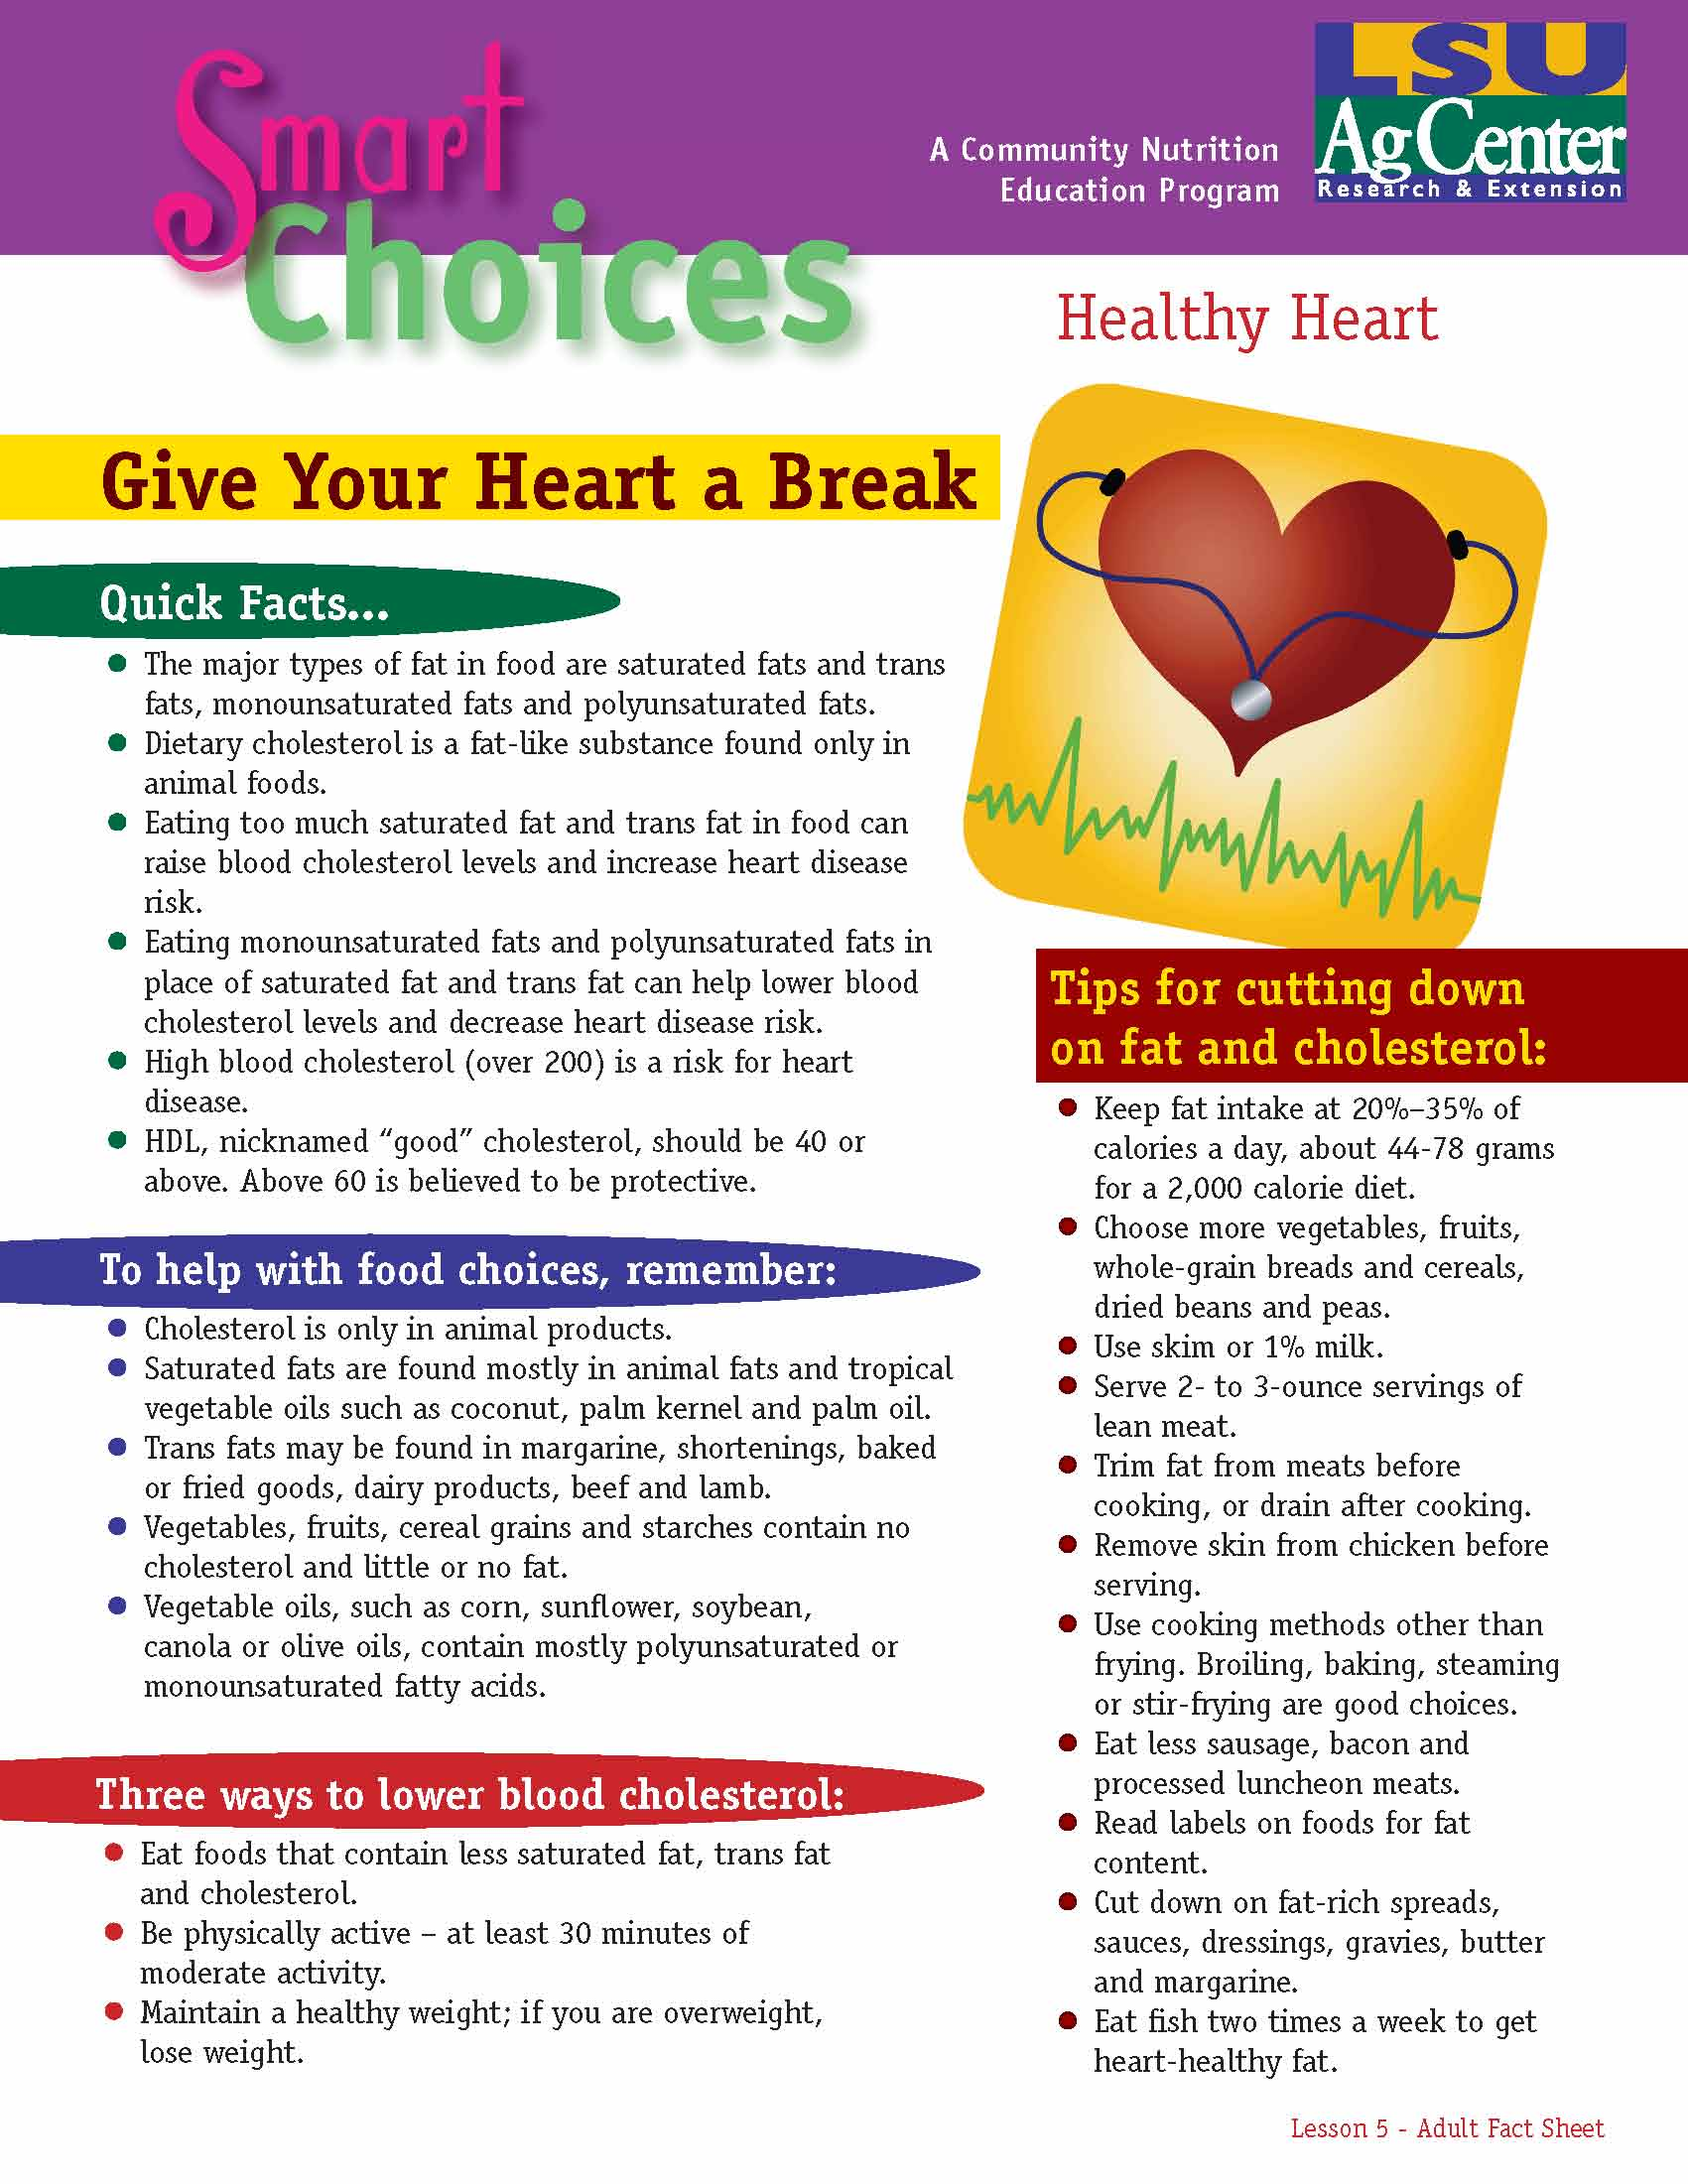 Smart Choices:  Give Your Heart a Break